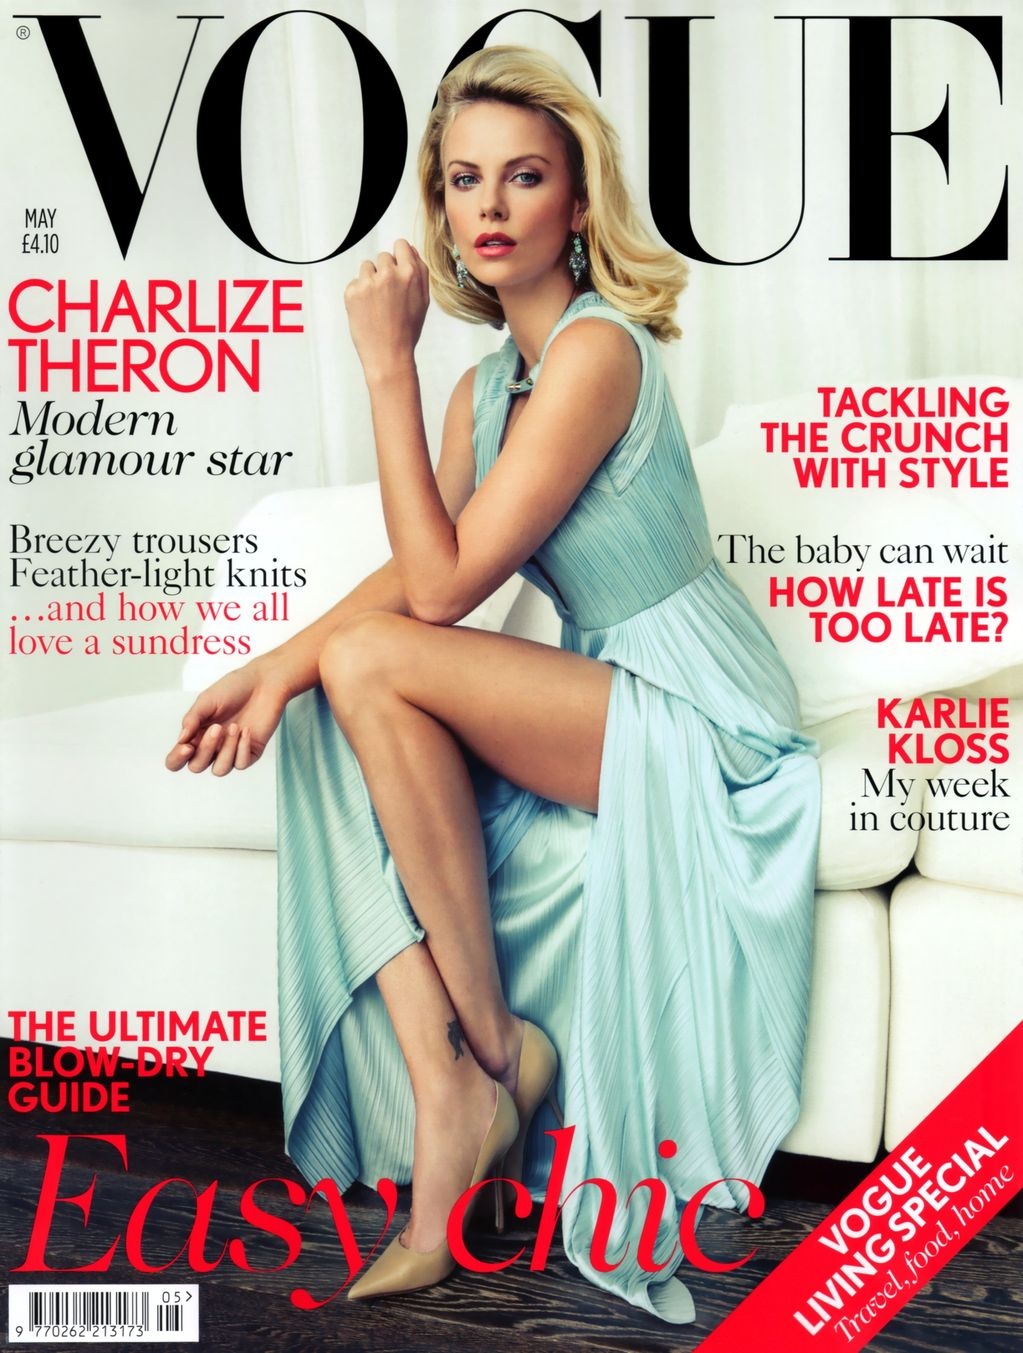 Charlize Theron In Versace For British Vogue